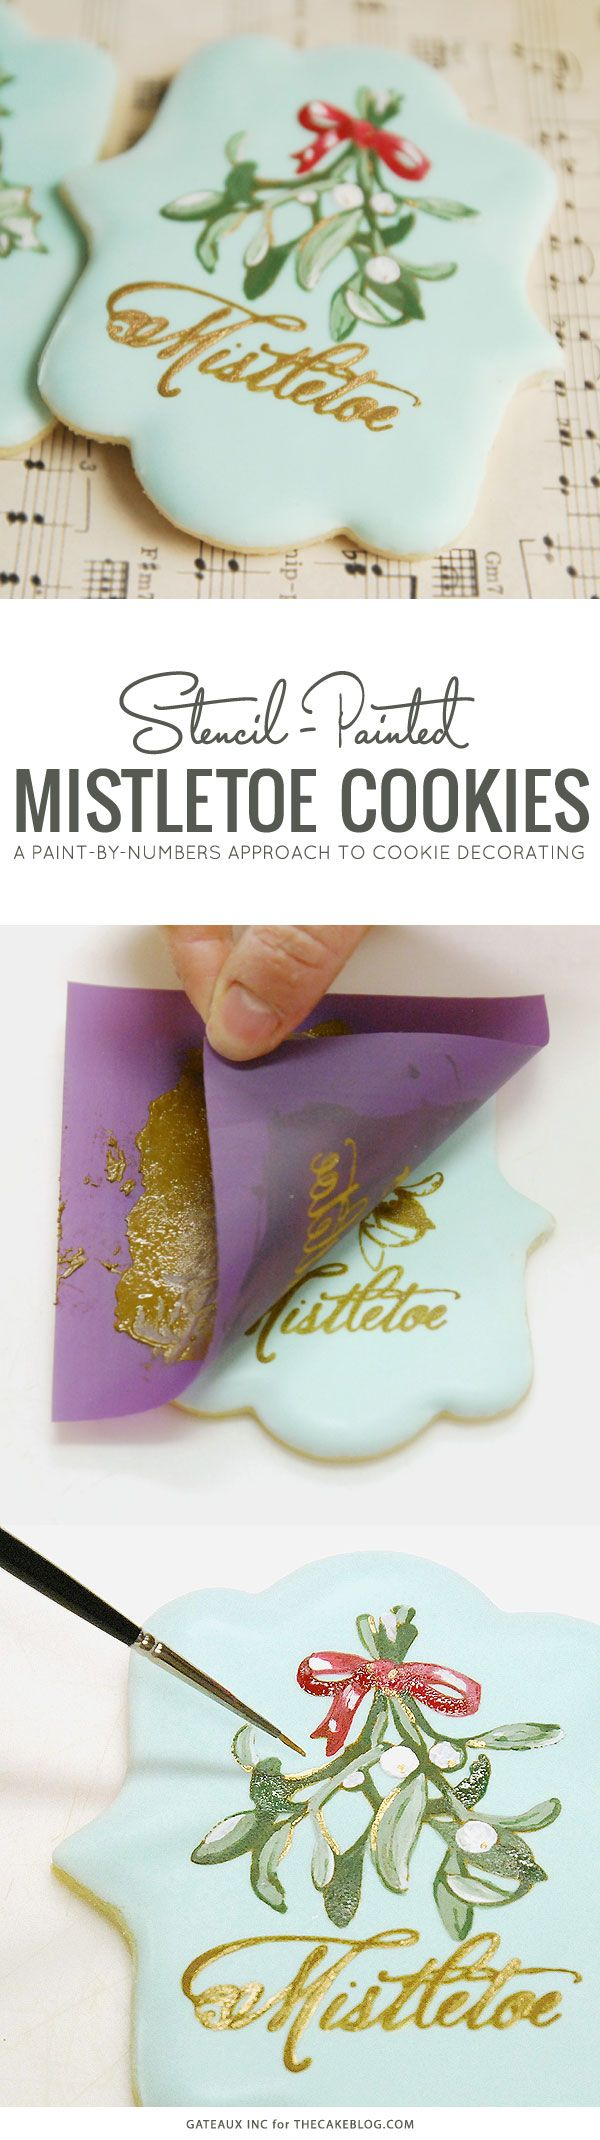 How to stencil-paint a cookie | Mistletoe Cookie Tutorial | by Robin Martin for TheCakeBlog.com